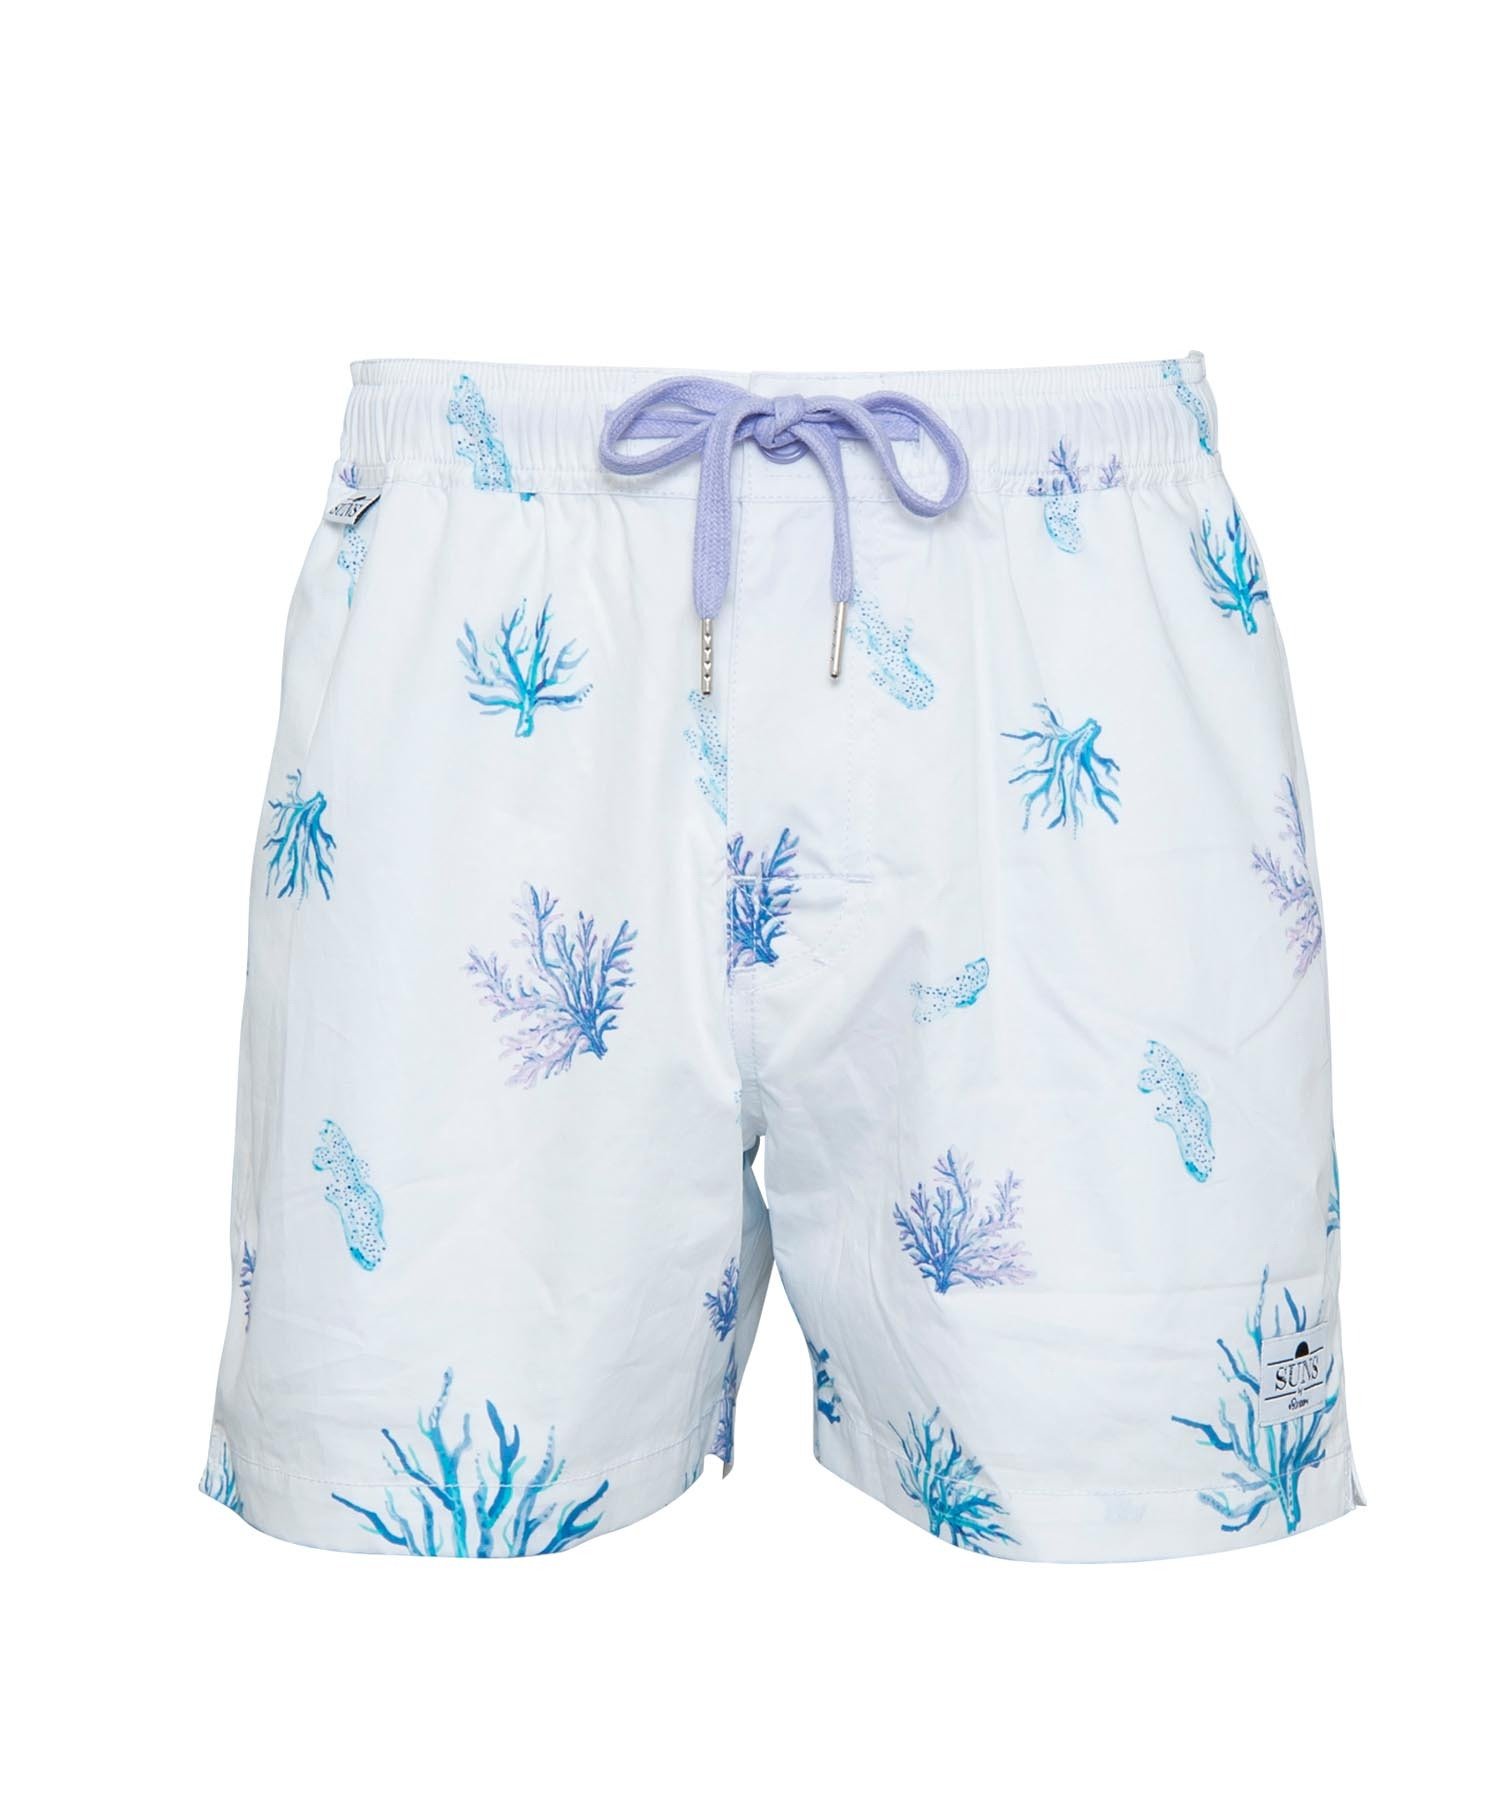 SUNS CORAL PATTERN SWIM SHORTS[RSW028]